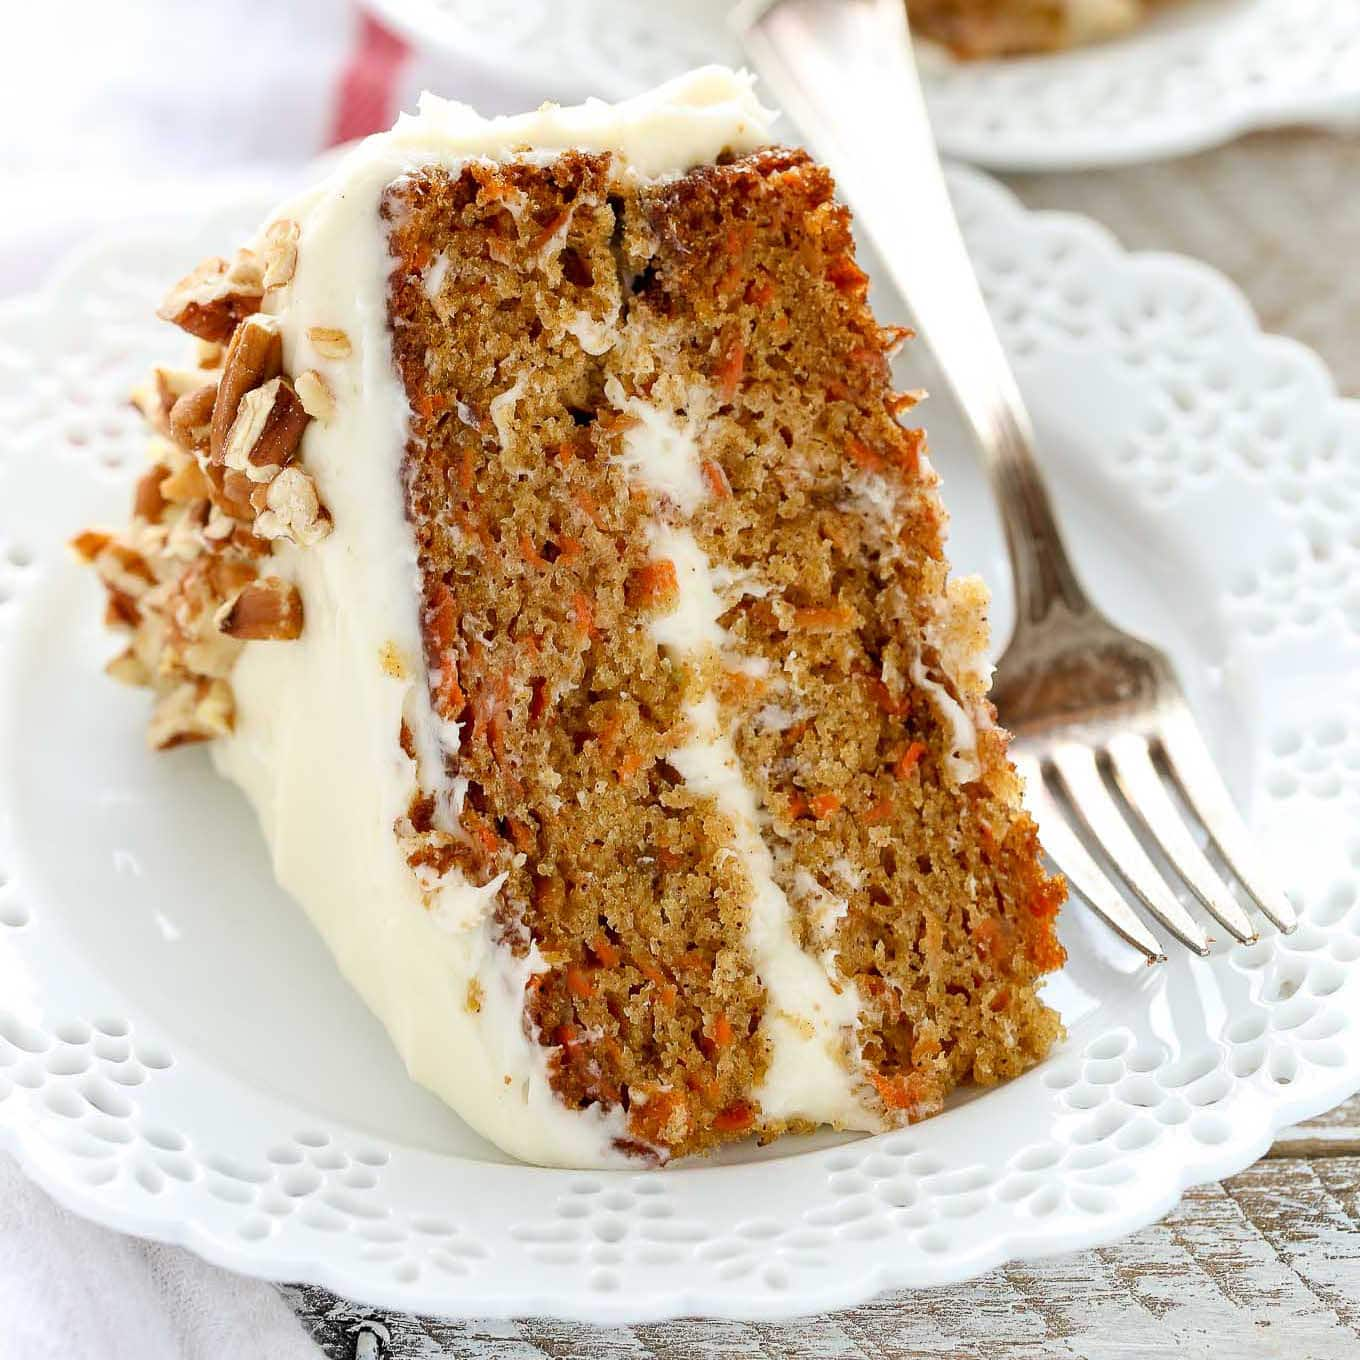 Pineapple Sunshine Carrot Cake